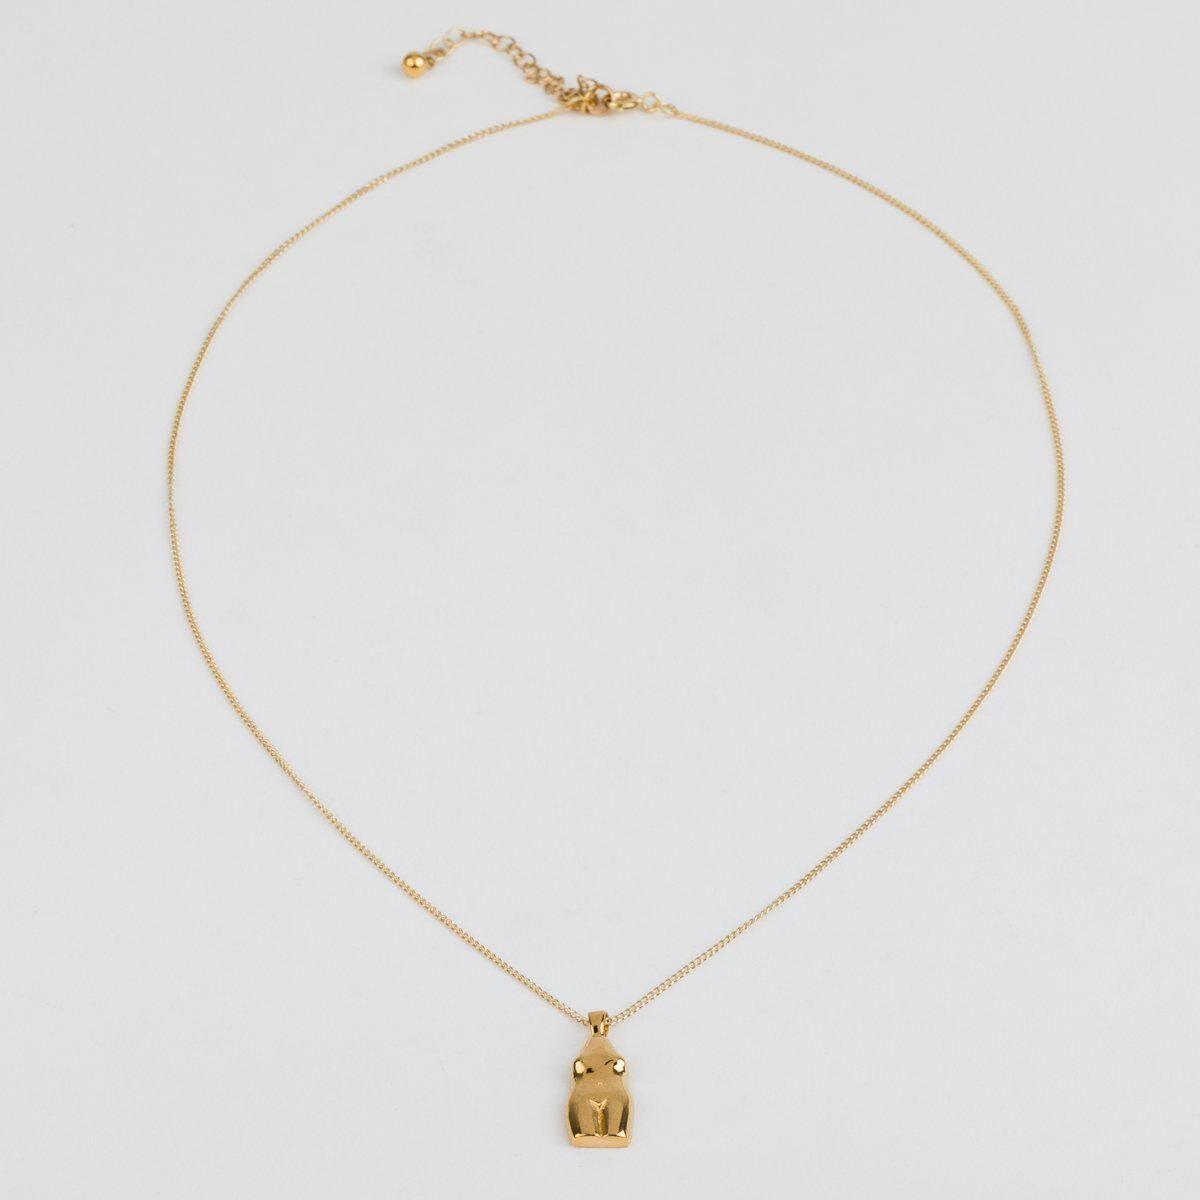 The Woman Vase Necklace